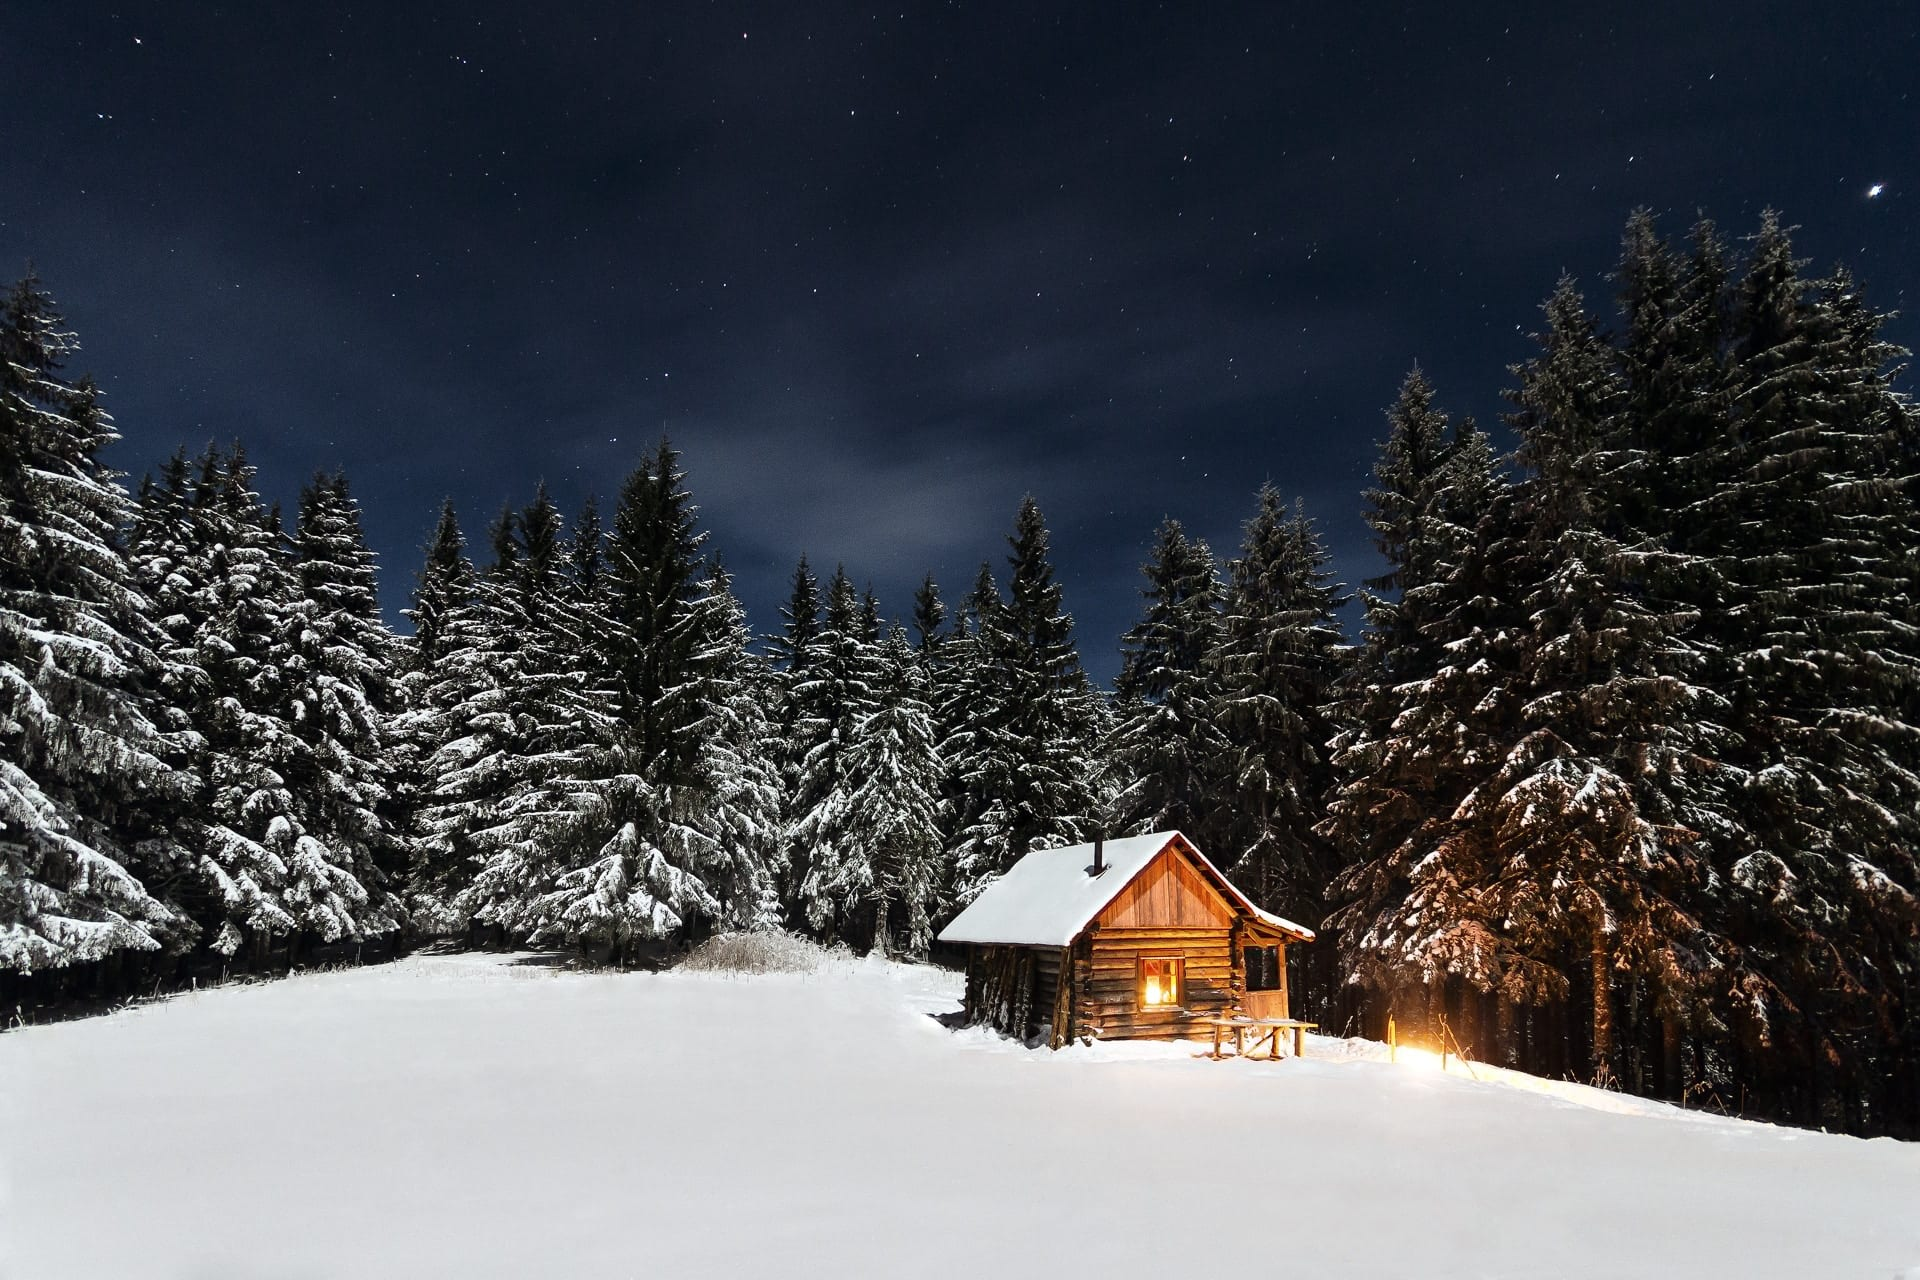 10 Great Christmas Vacation Ideas in the U.S. and Nearby